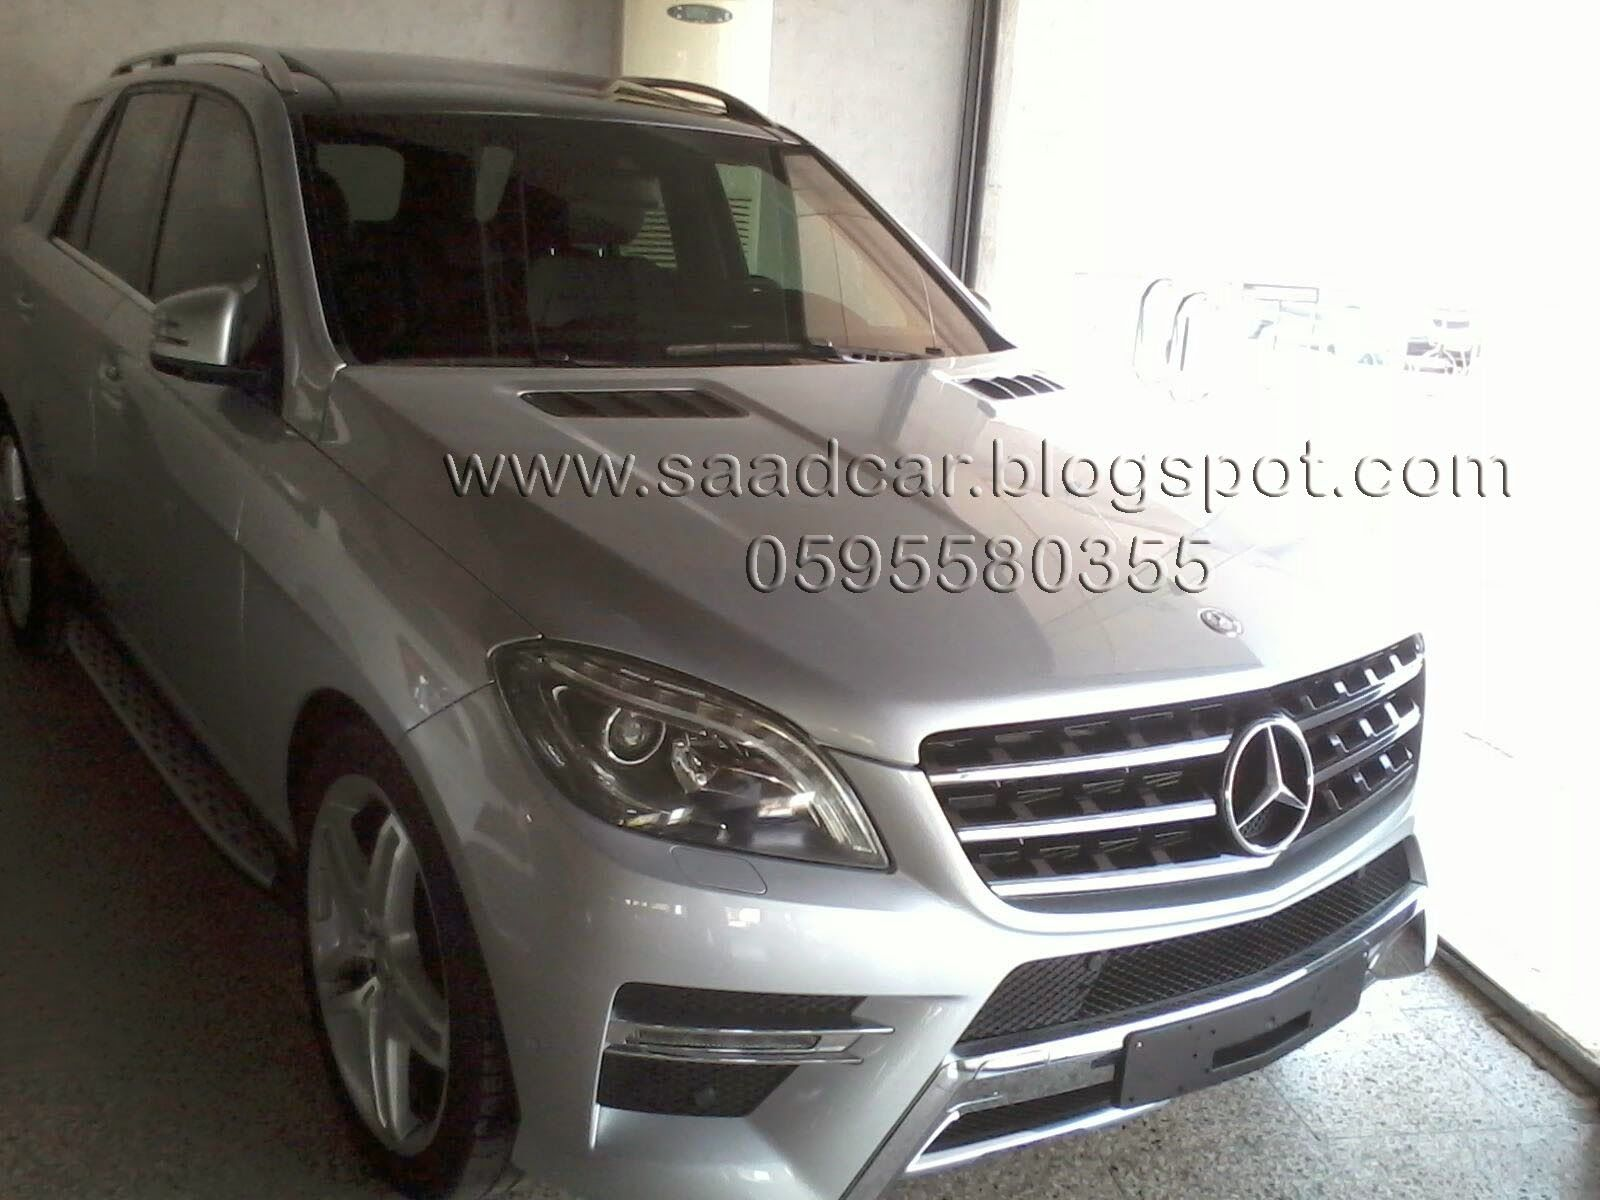 سعدكار مرسيدس Ml350 فضي 2013 Mercedes Benz Ml350 Cars Mercedes Benz